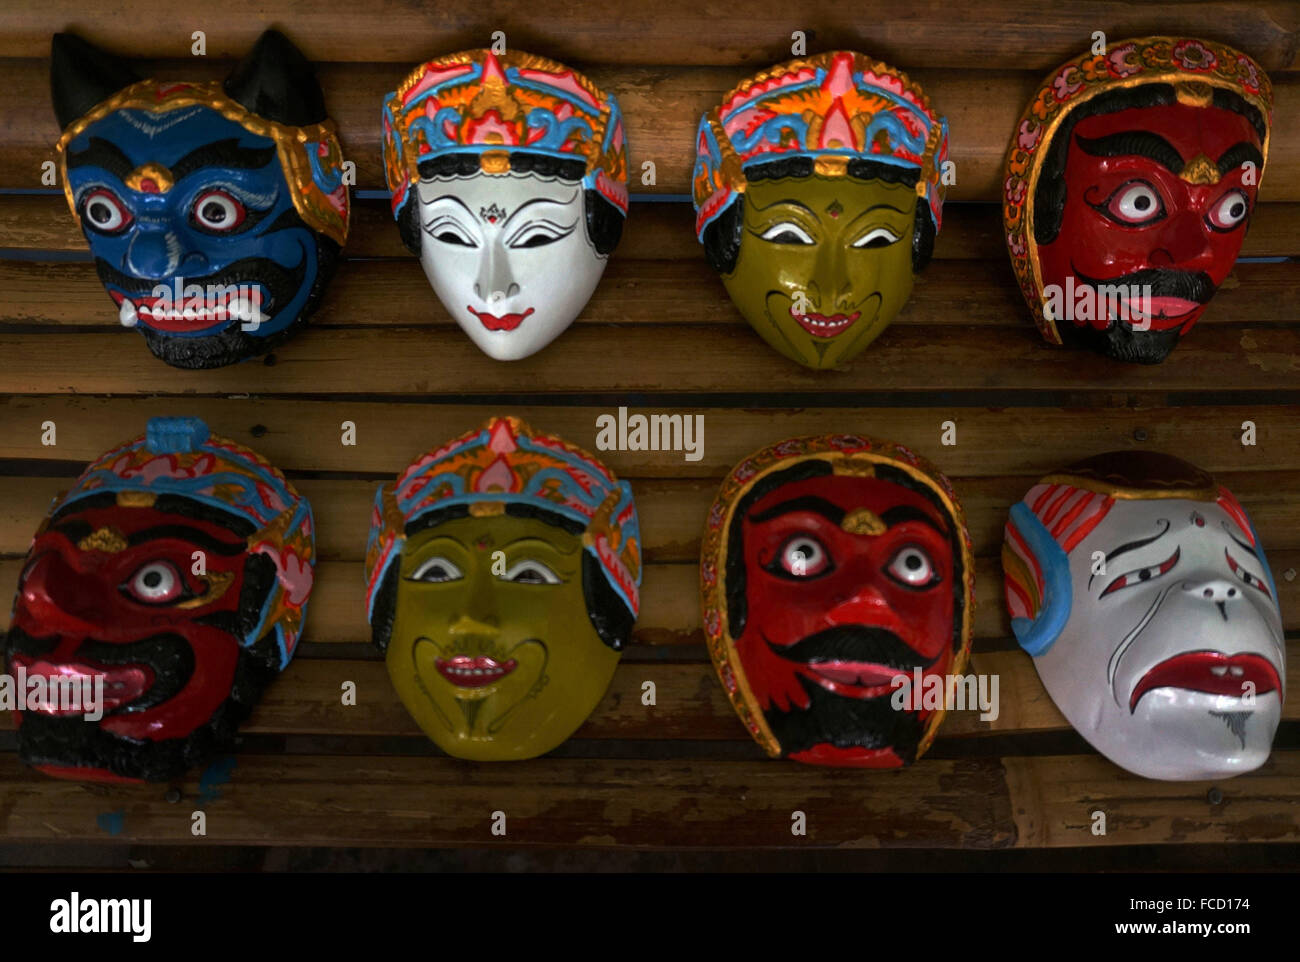 Malang, Indonesia  20th Jan, 2016  Souvenir masks puppet in